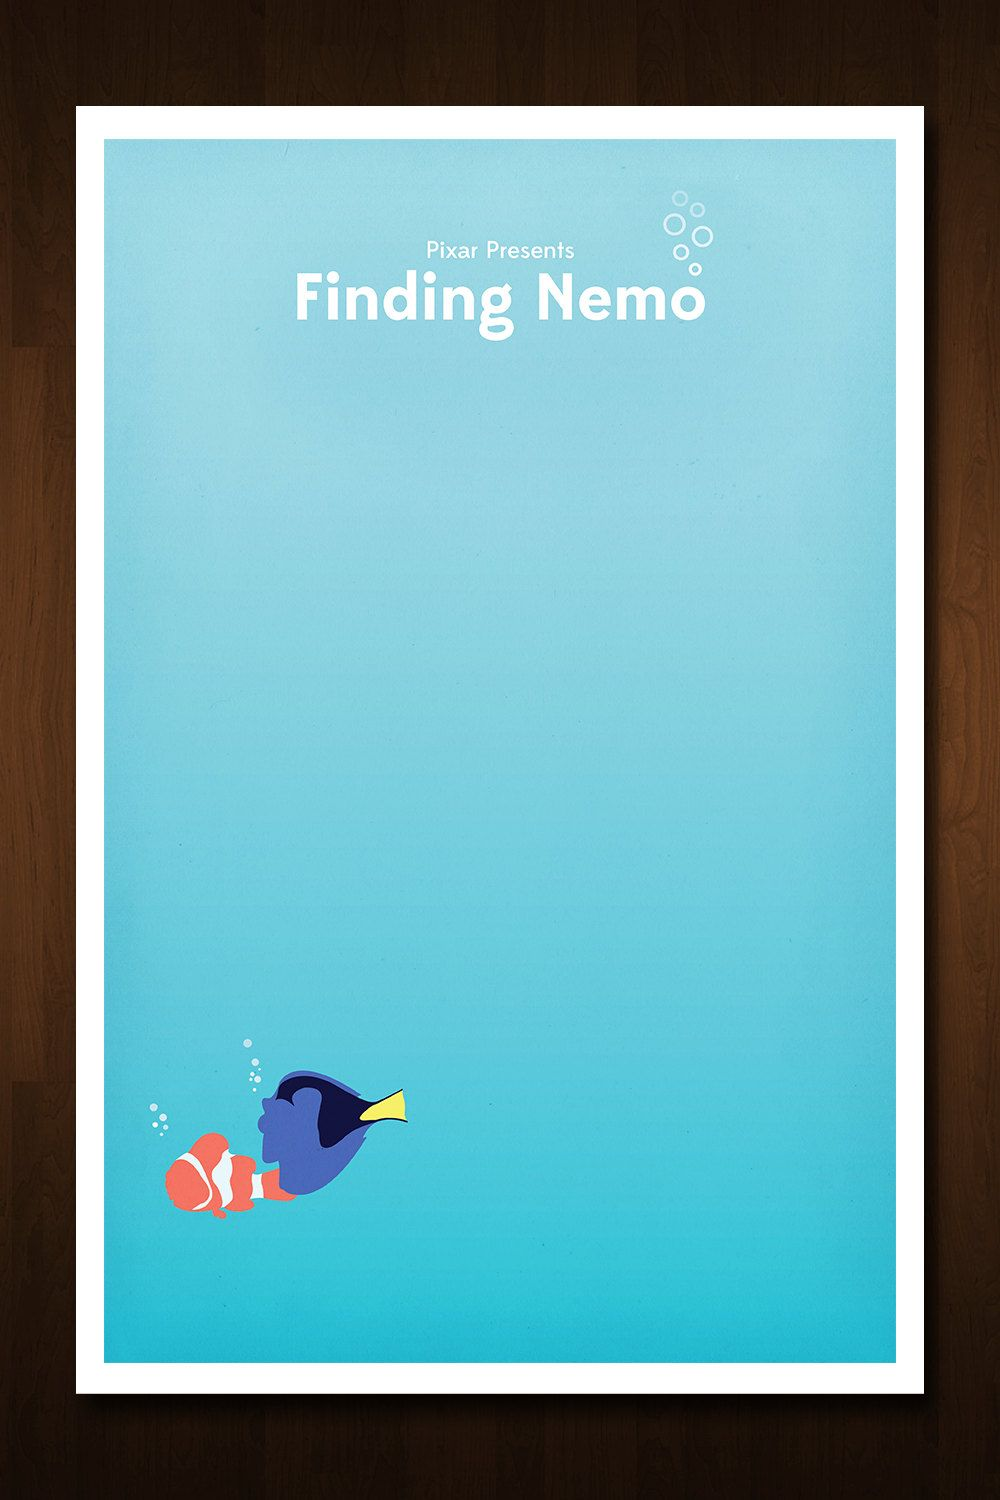 best images about finding nemo keep swimming 17 best images about finding nemo keep swimming the movie and iphone